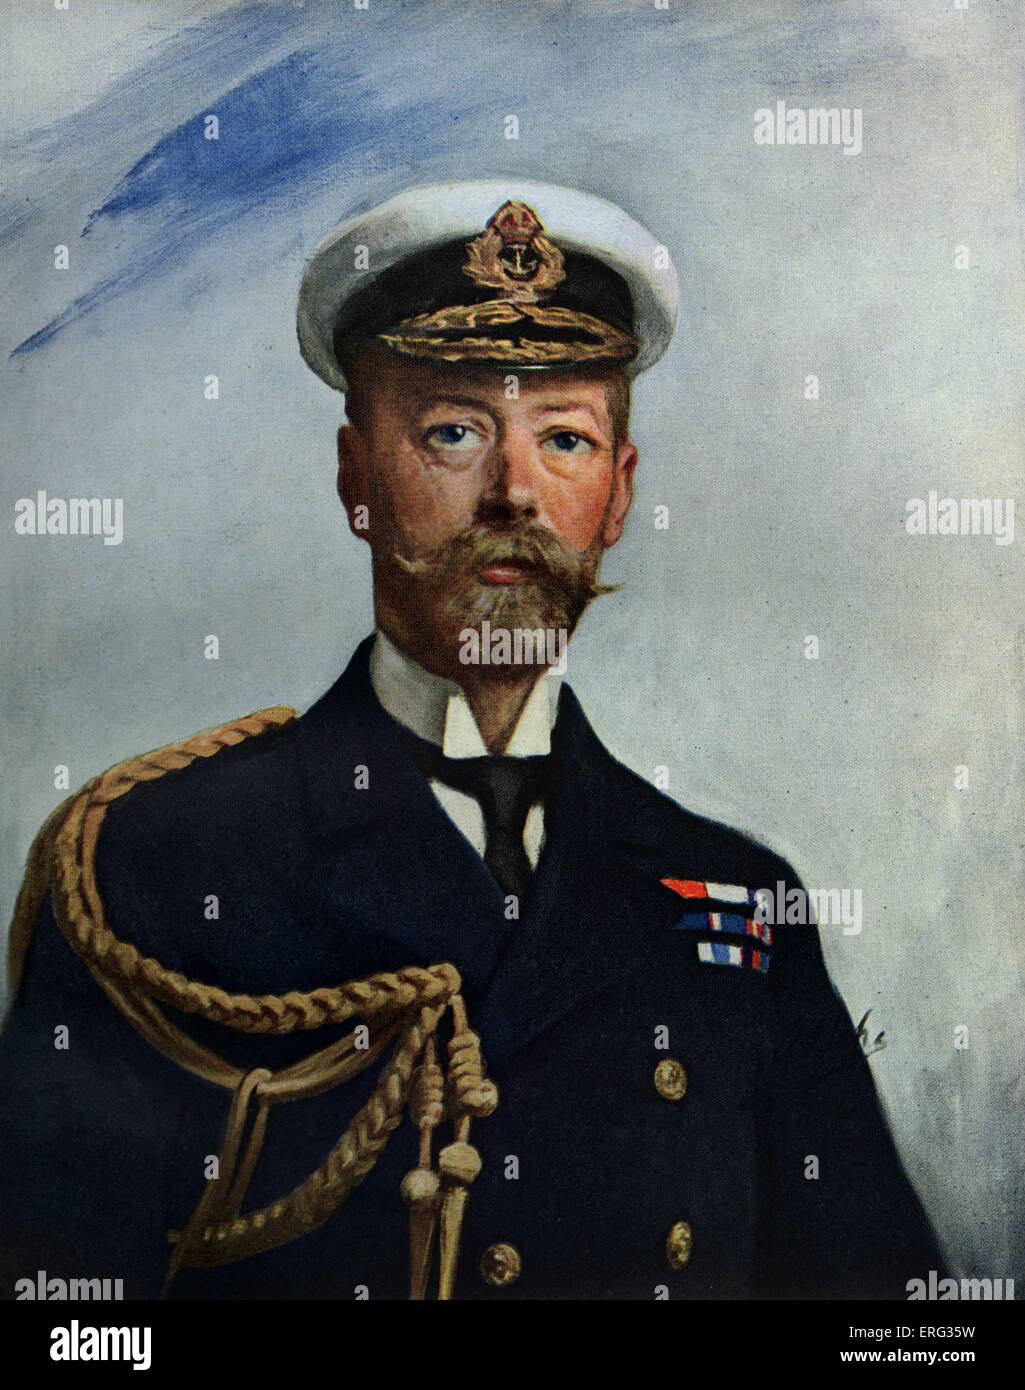 King George V,copy of the portrait by A. S. Cope, 1911.  George V, British monarch, 3 June 1865 – 20 January 1936. - Stock Image